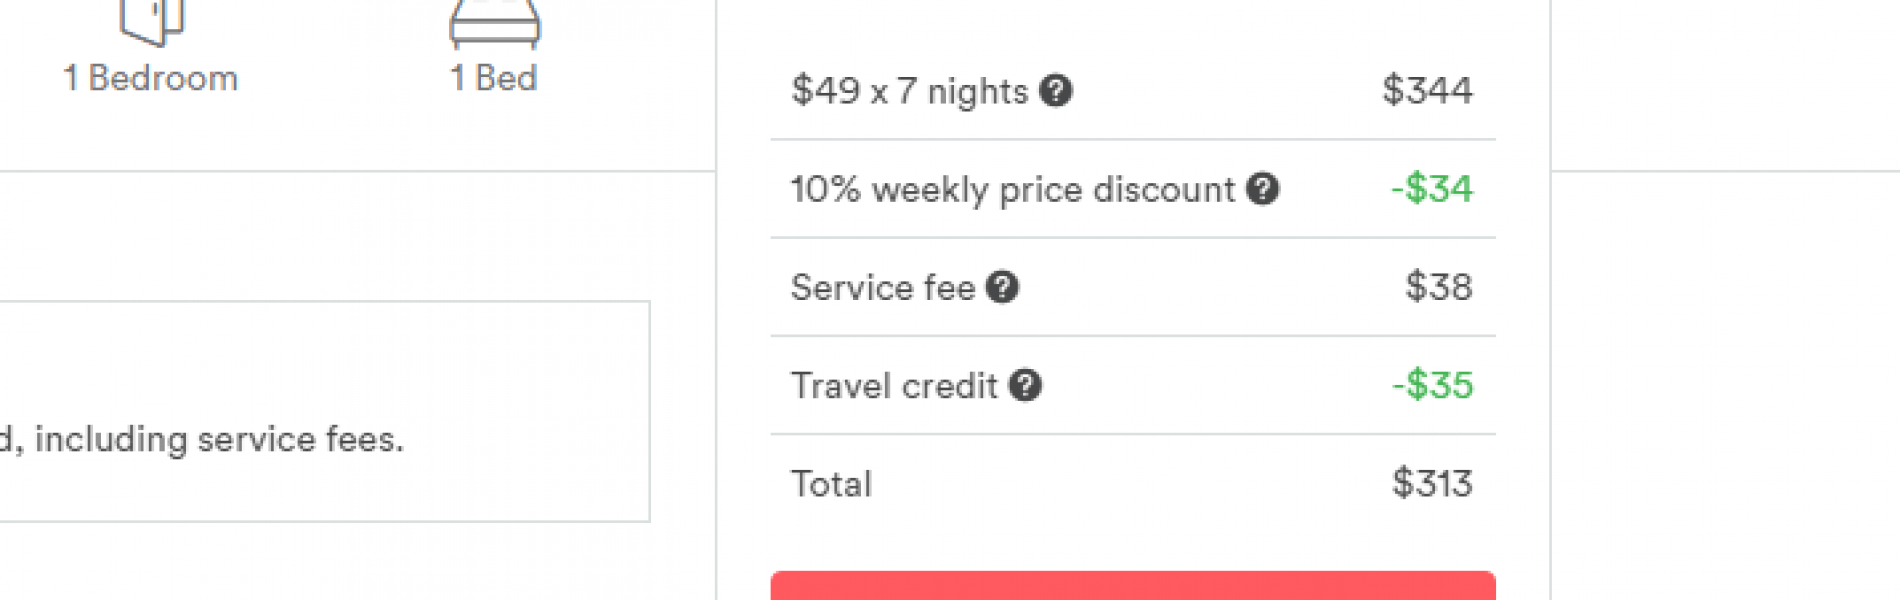 Airbnb Promo - Weekly Discount